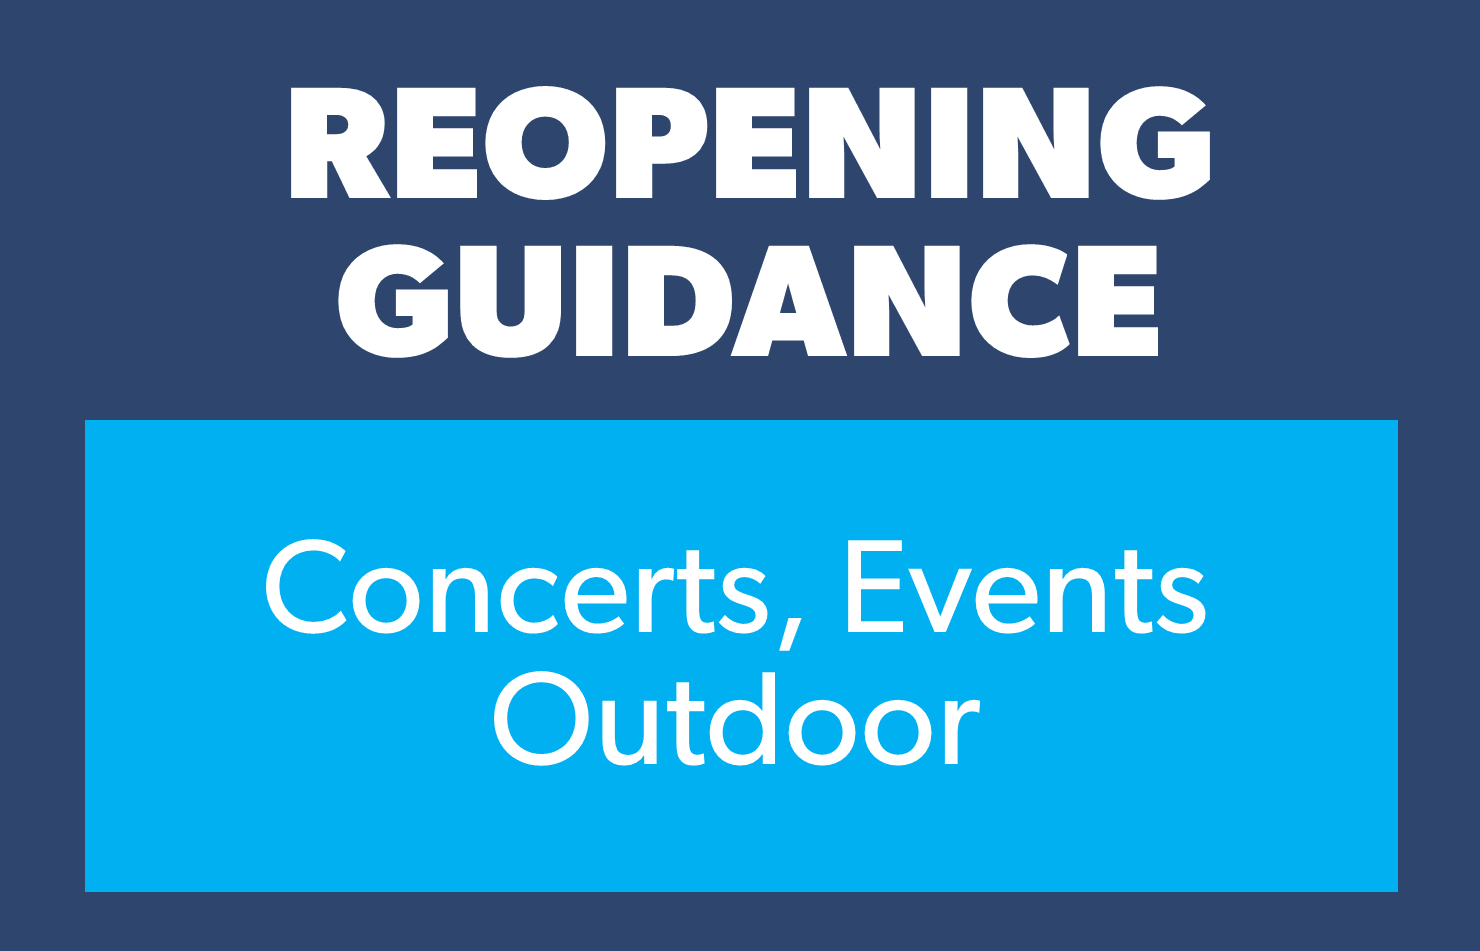 Concerts events outdoor 4.15.21